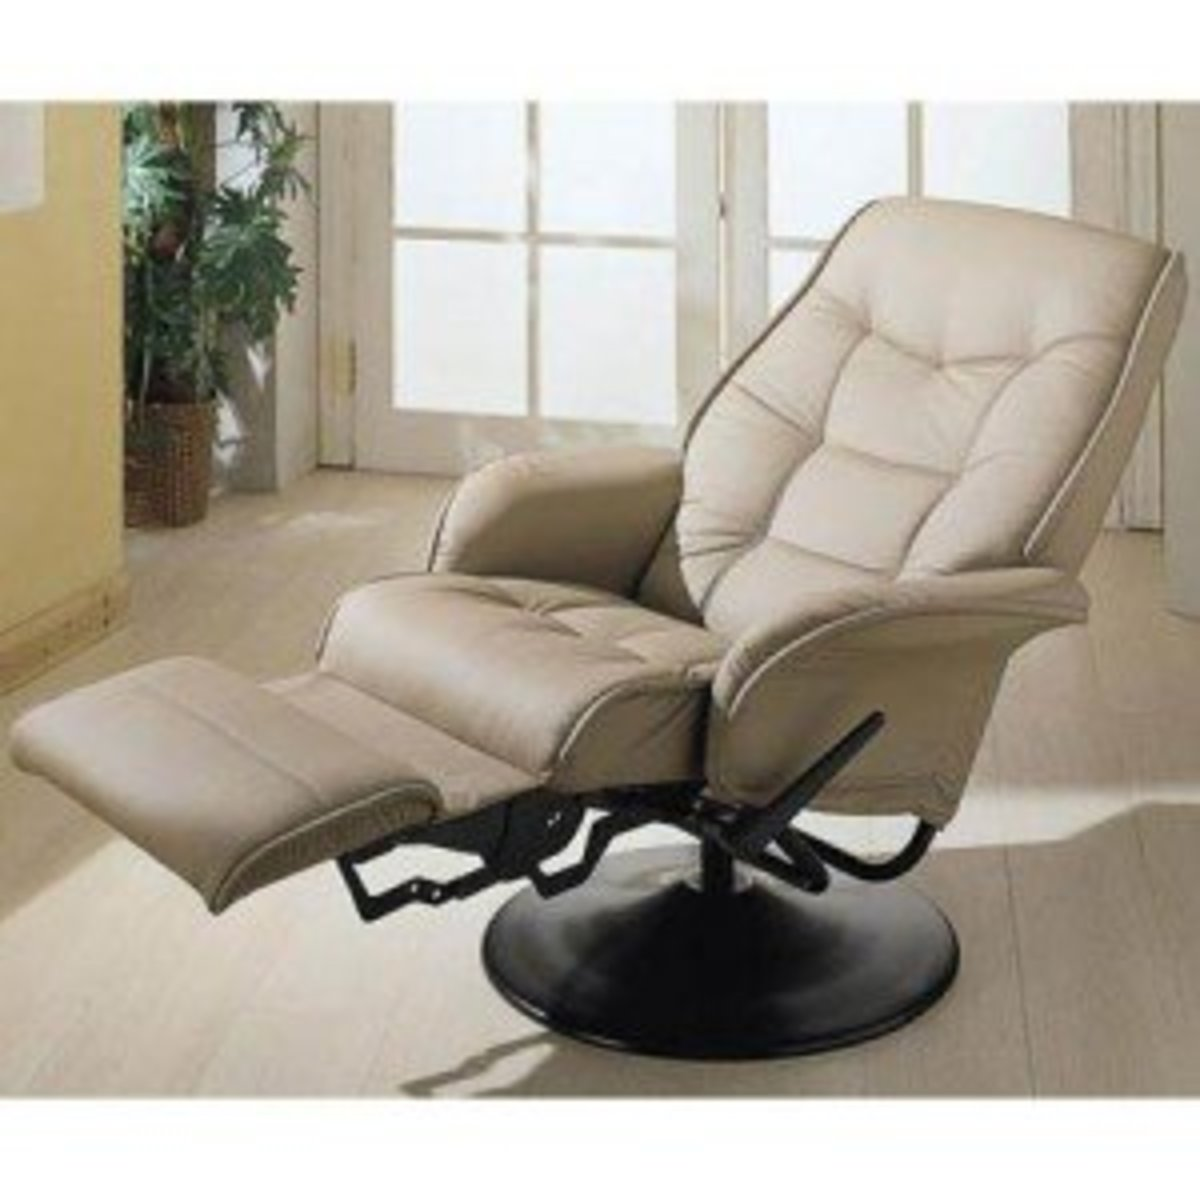 electric-recliner-chair-